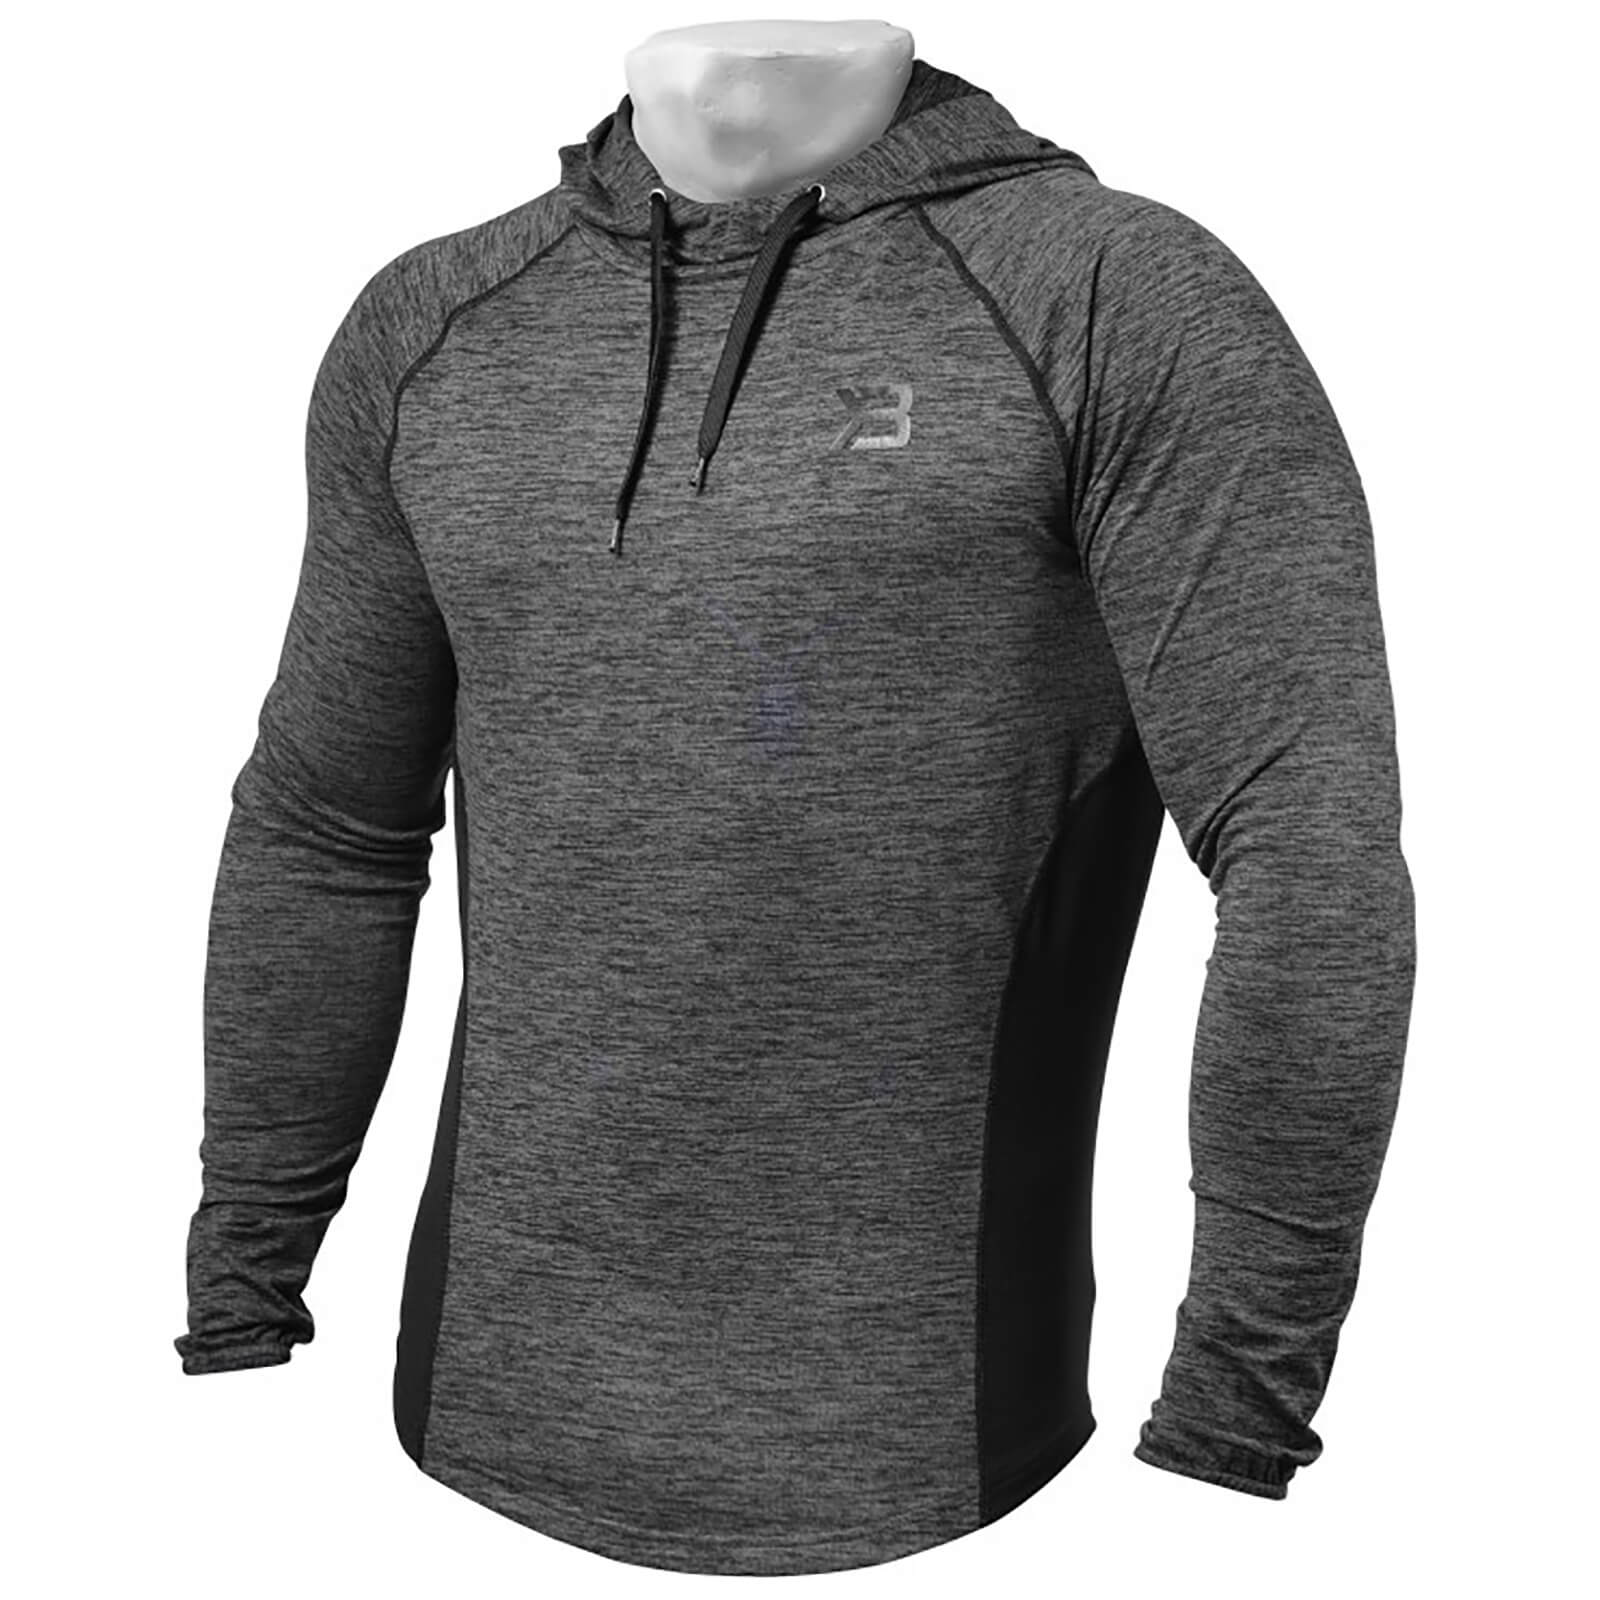 Better Bodies Performance Mid Hoody - Graph Melange - S